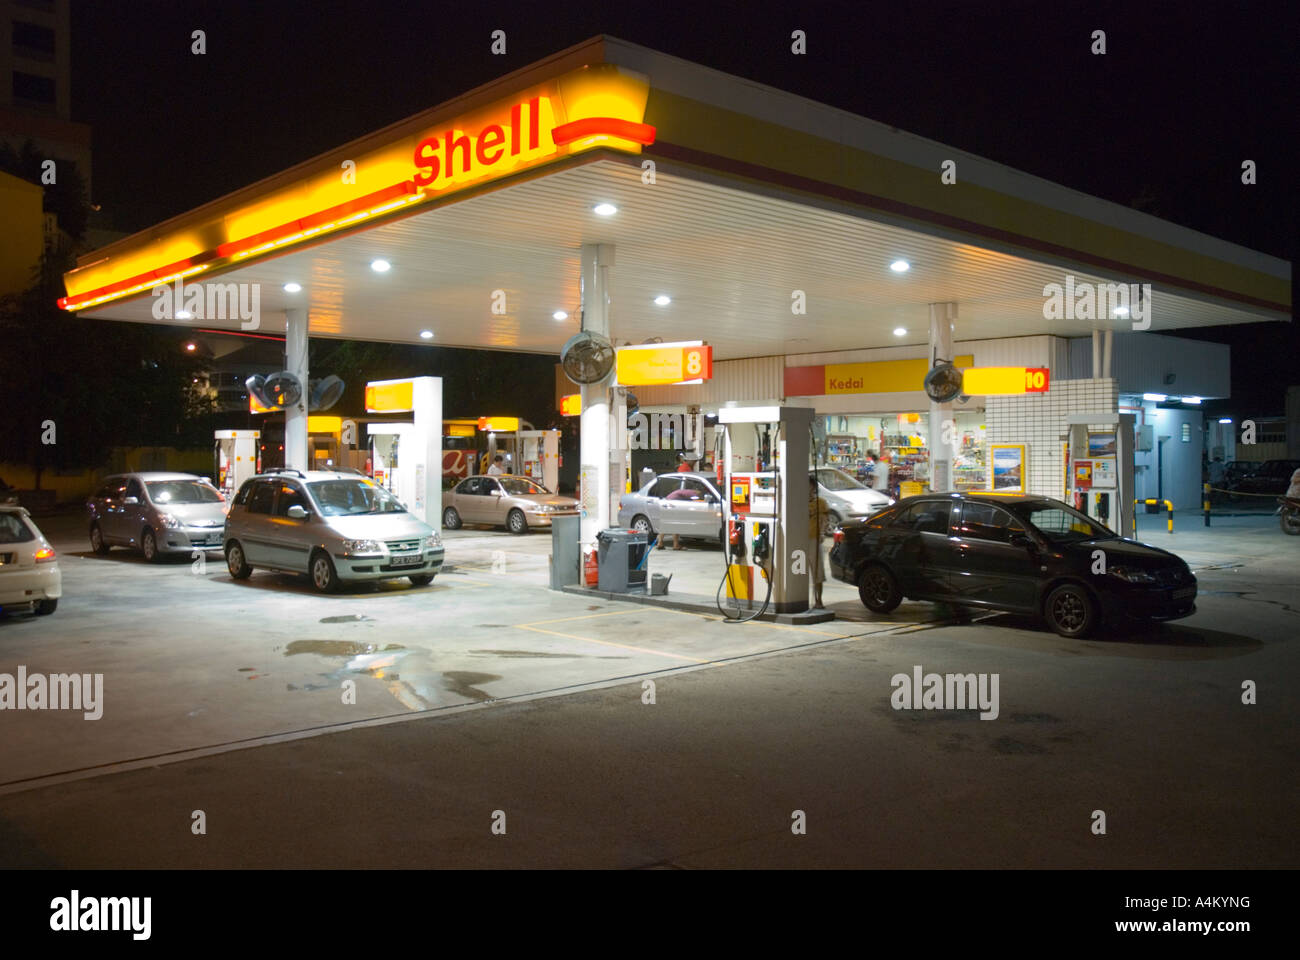 a shell service station at night in johor bahru stock photo 11076267 alamy. Black Bedroom Furniture Sets. Home Design Ideas